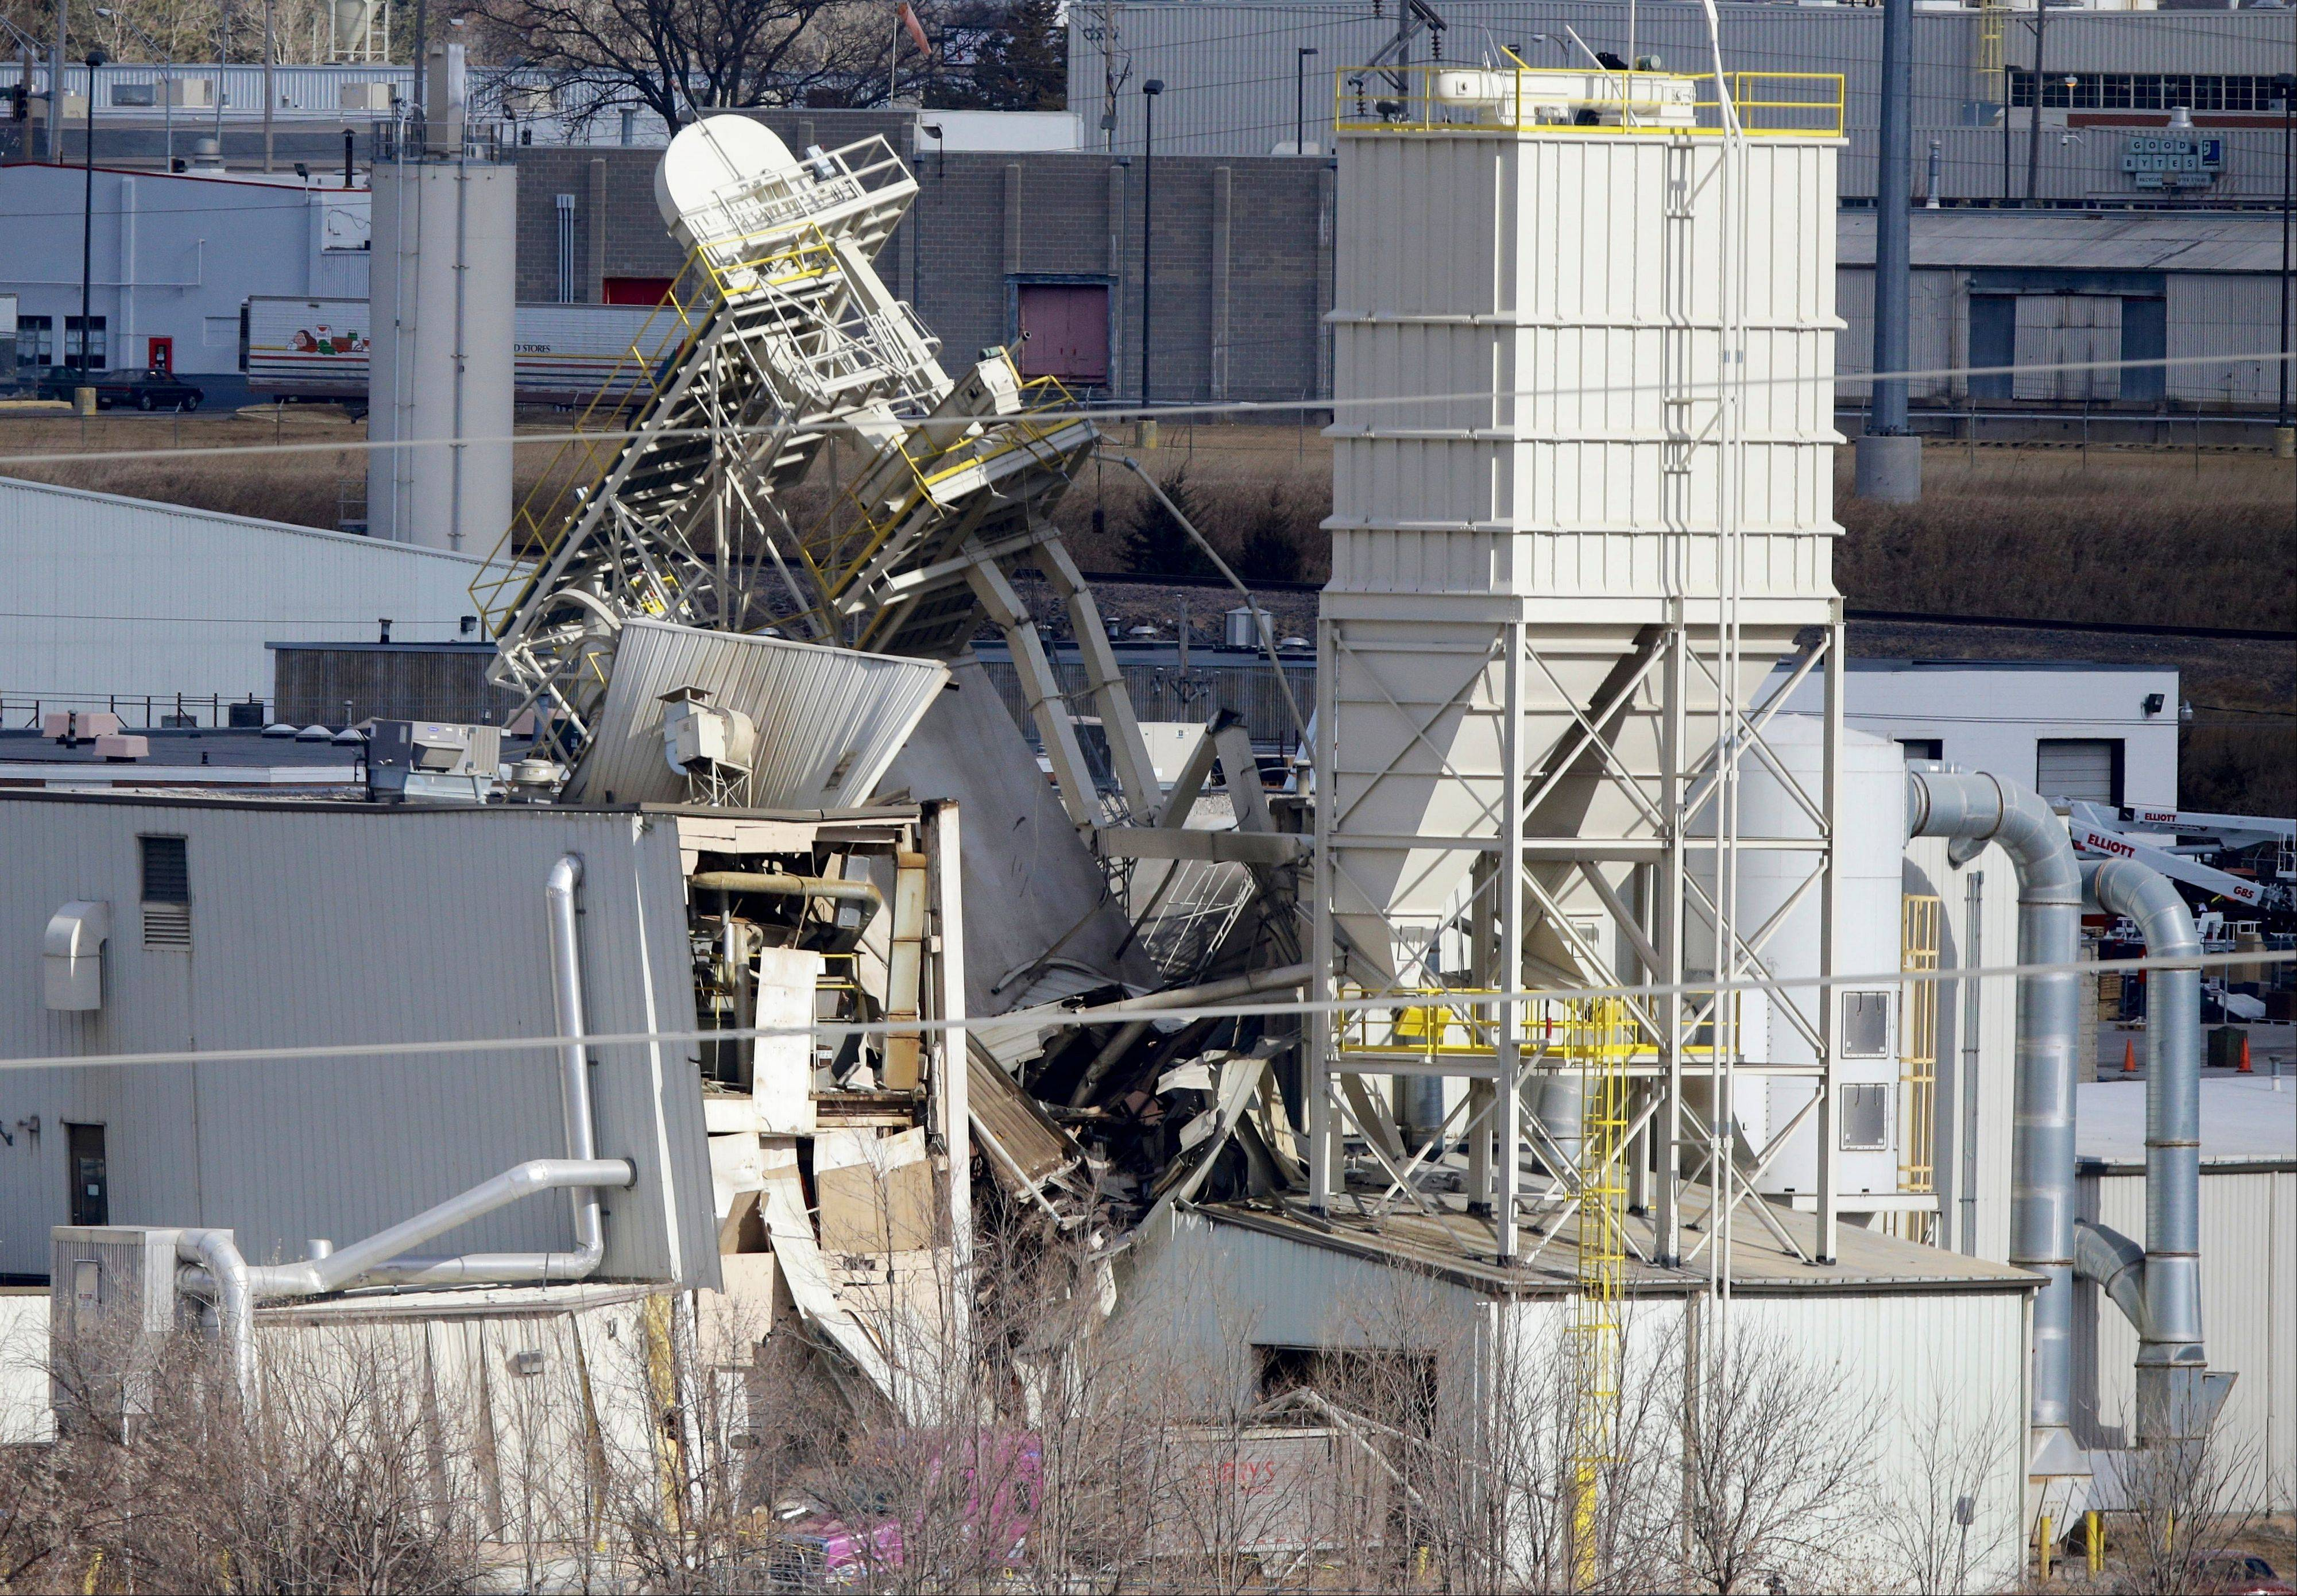 The International Nutrition plant is shown with wreckage in Omaha, Neb., where a fire and explosion took place Monday. Two people were killed and 10 others were seriously injured.